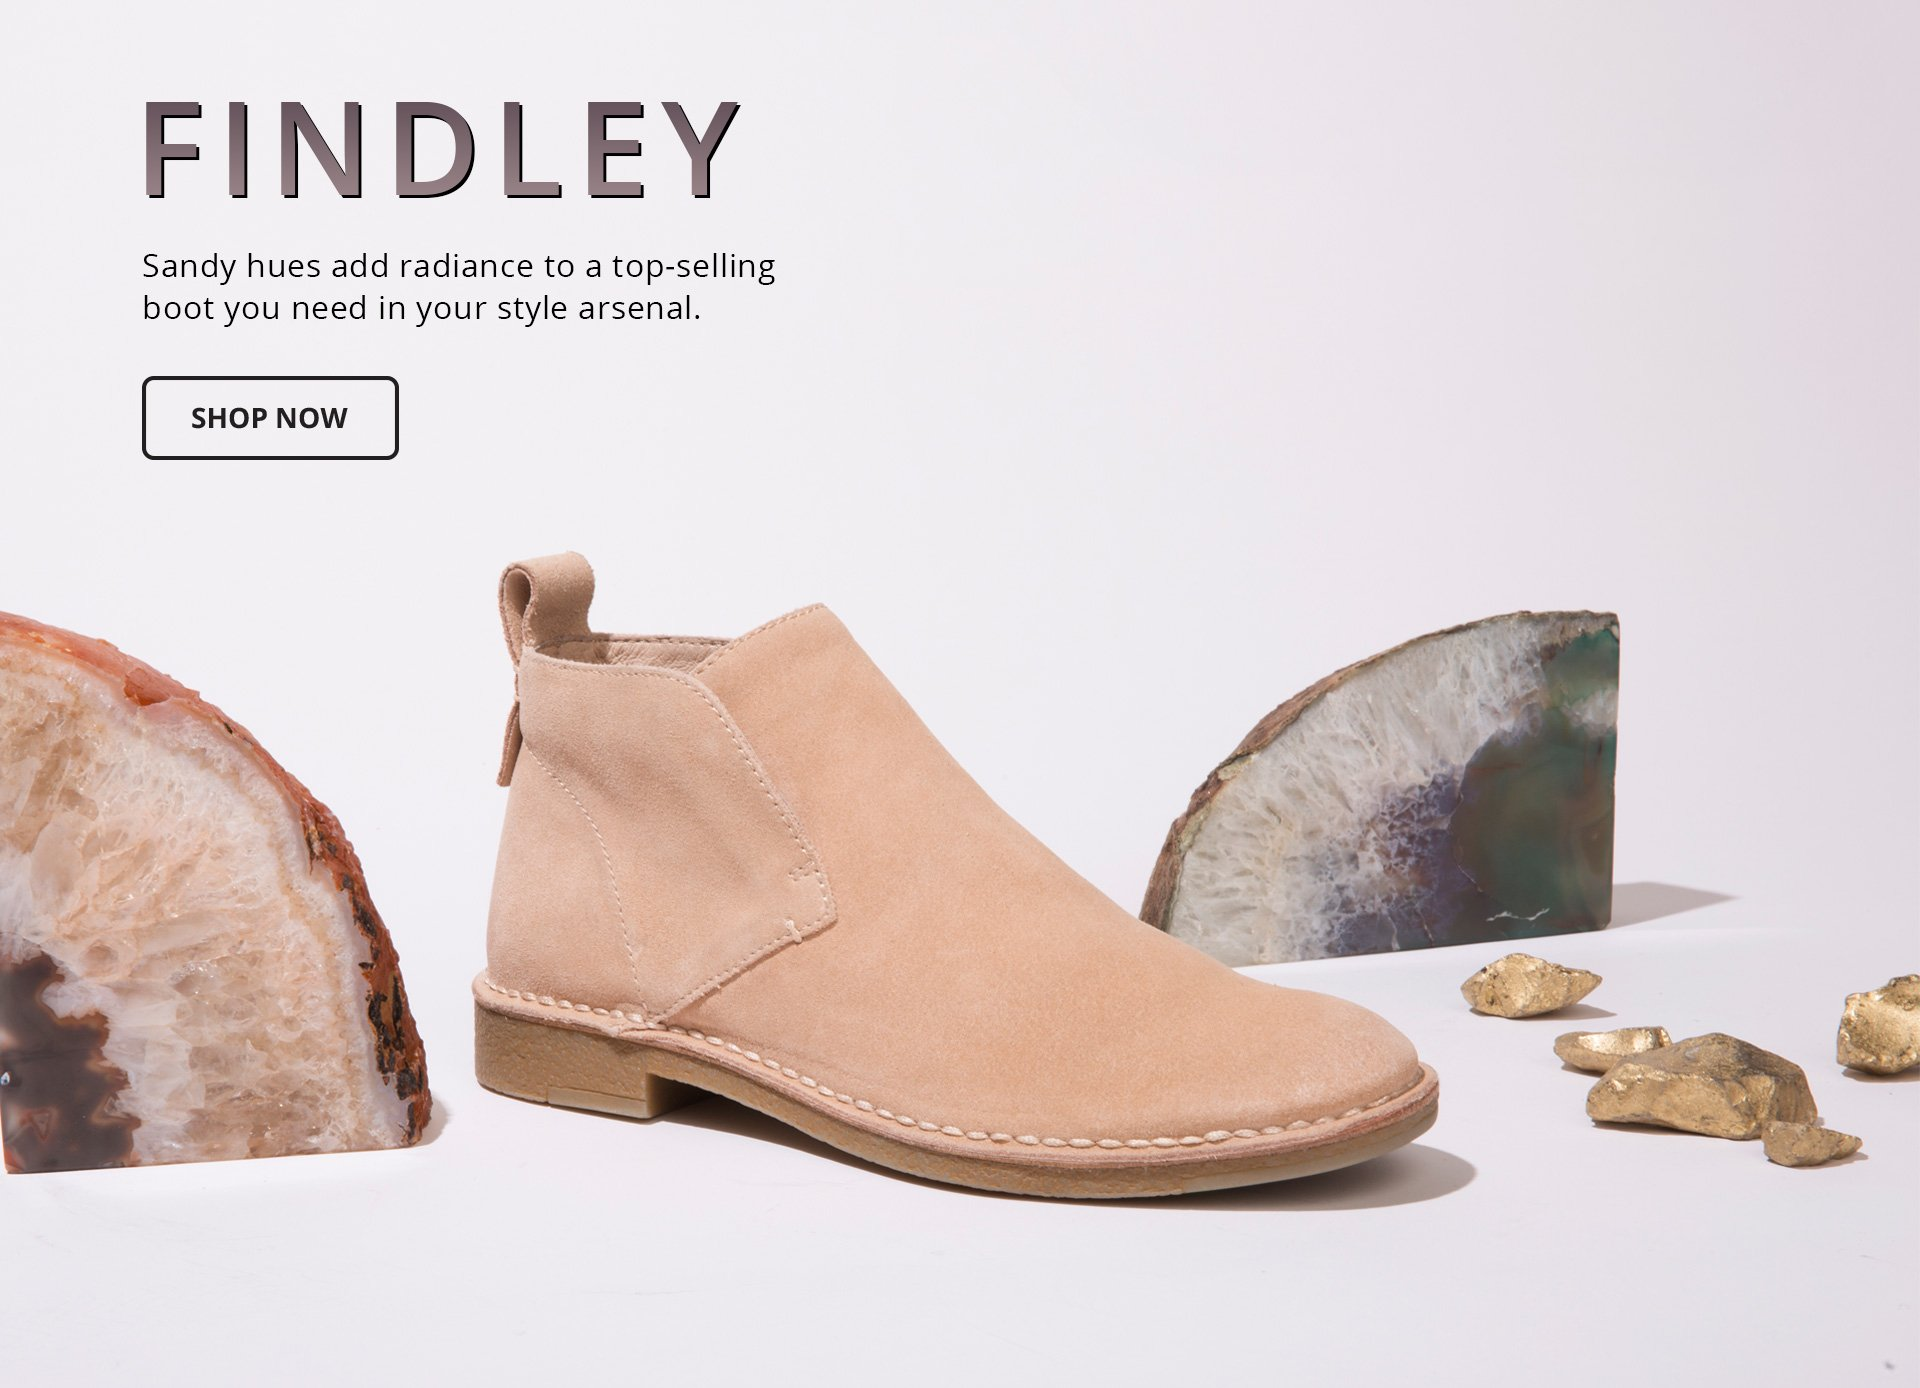 Findley. Sandy hues add radiance to a top-selling boot you need in your style arsenal. Shop Now.